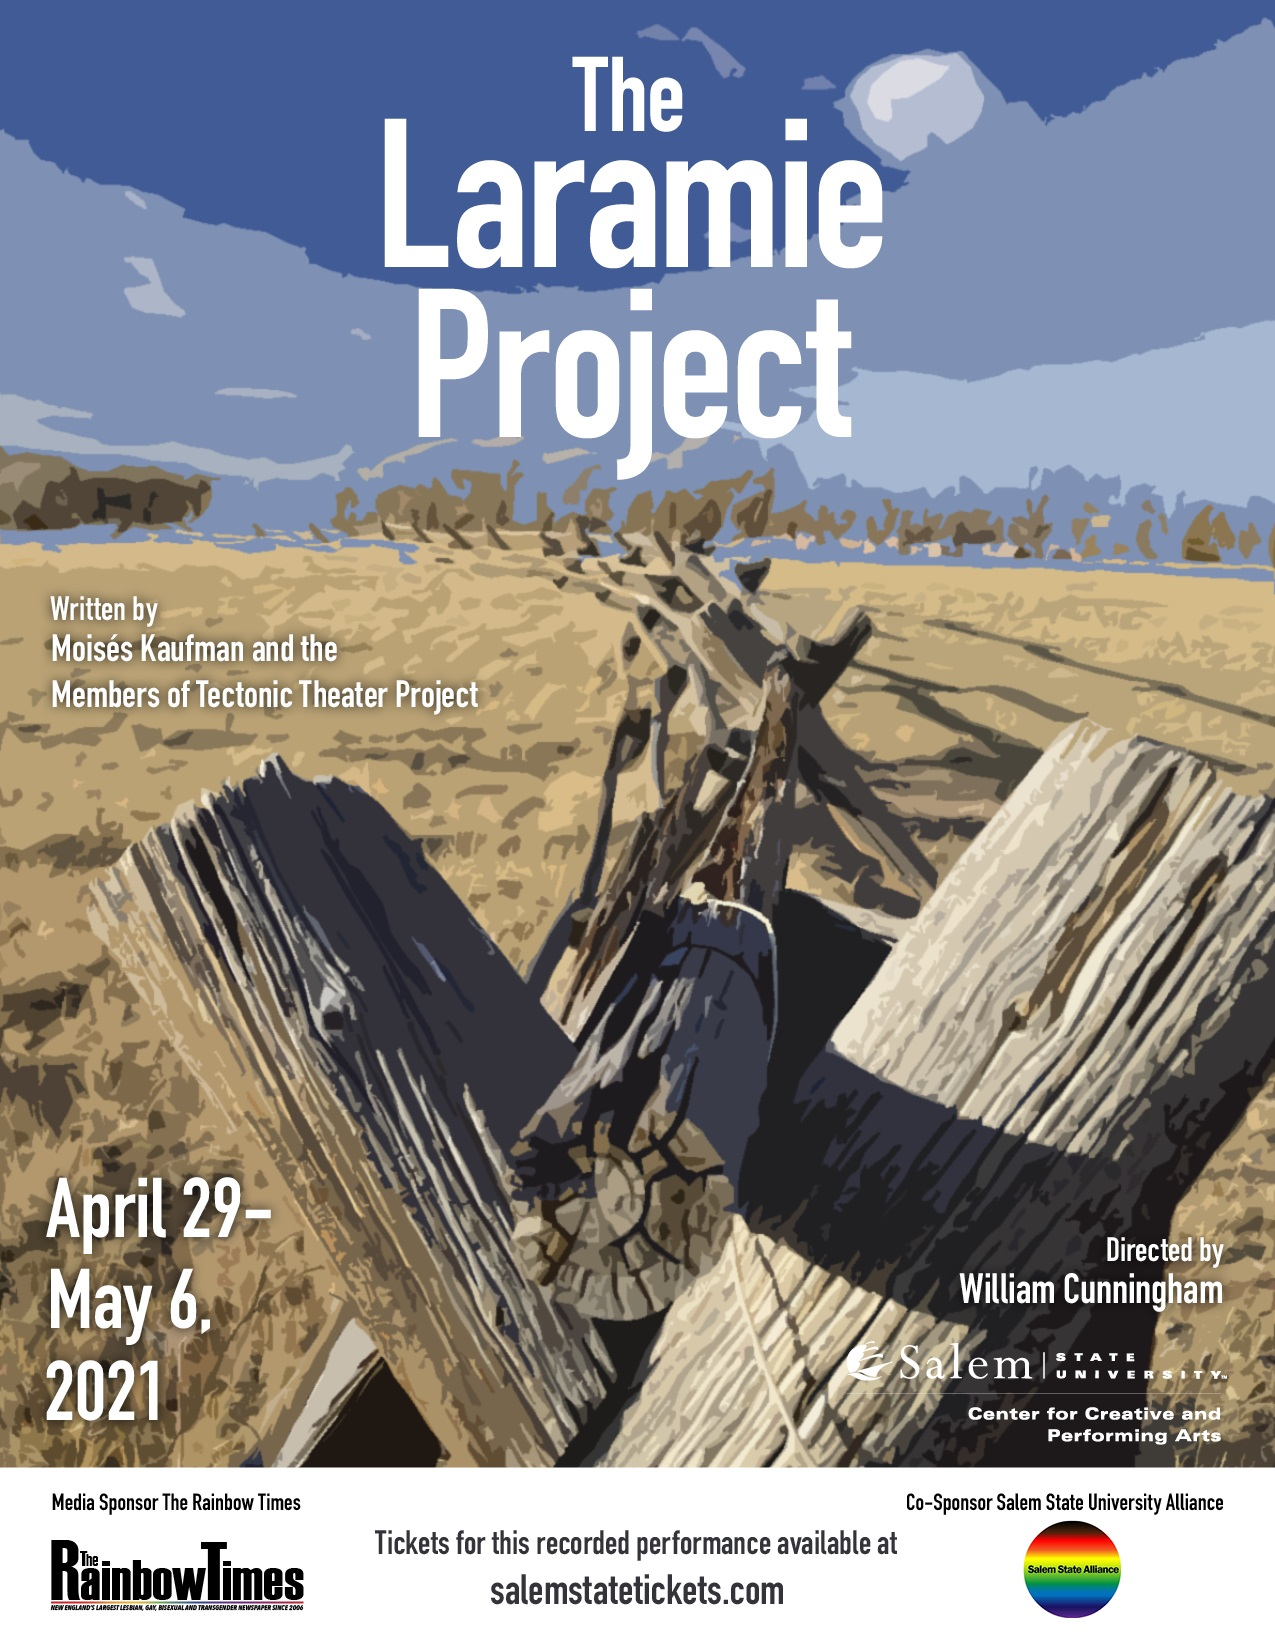 The Laramie Proejct live stream April 29 - May 6